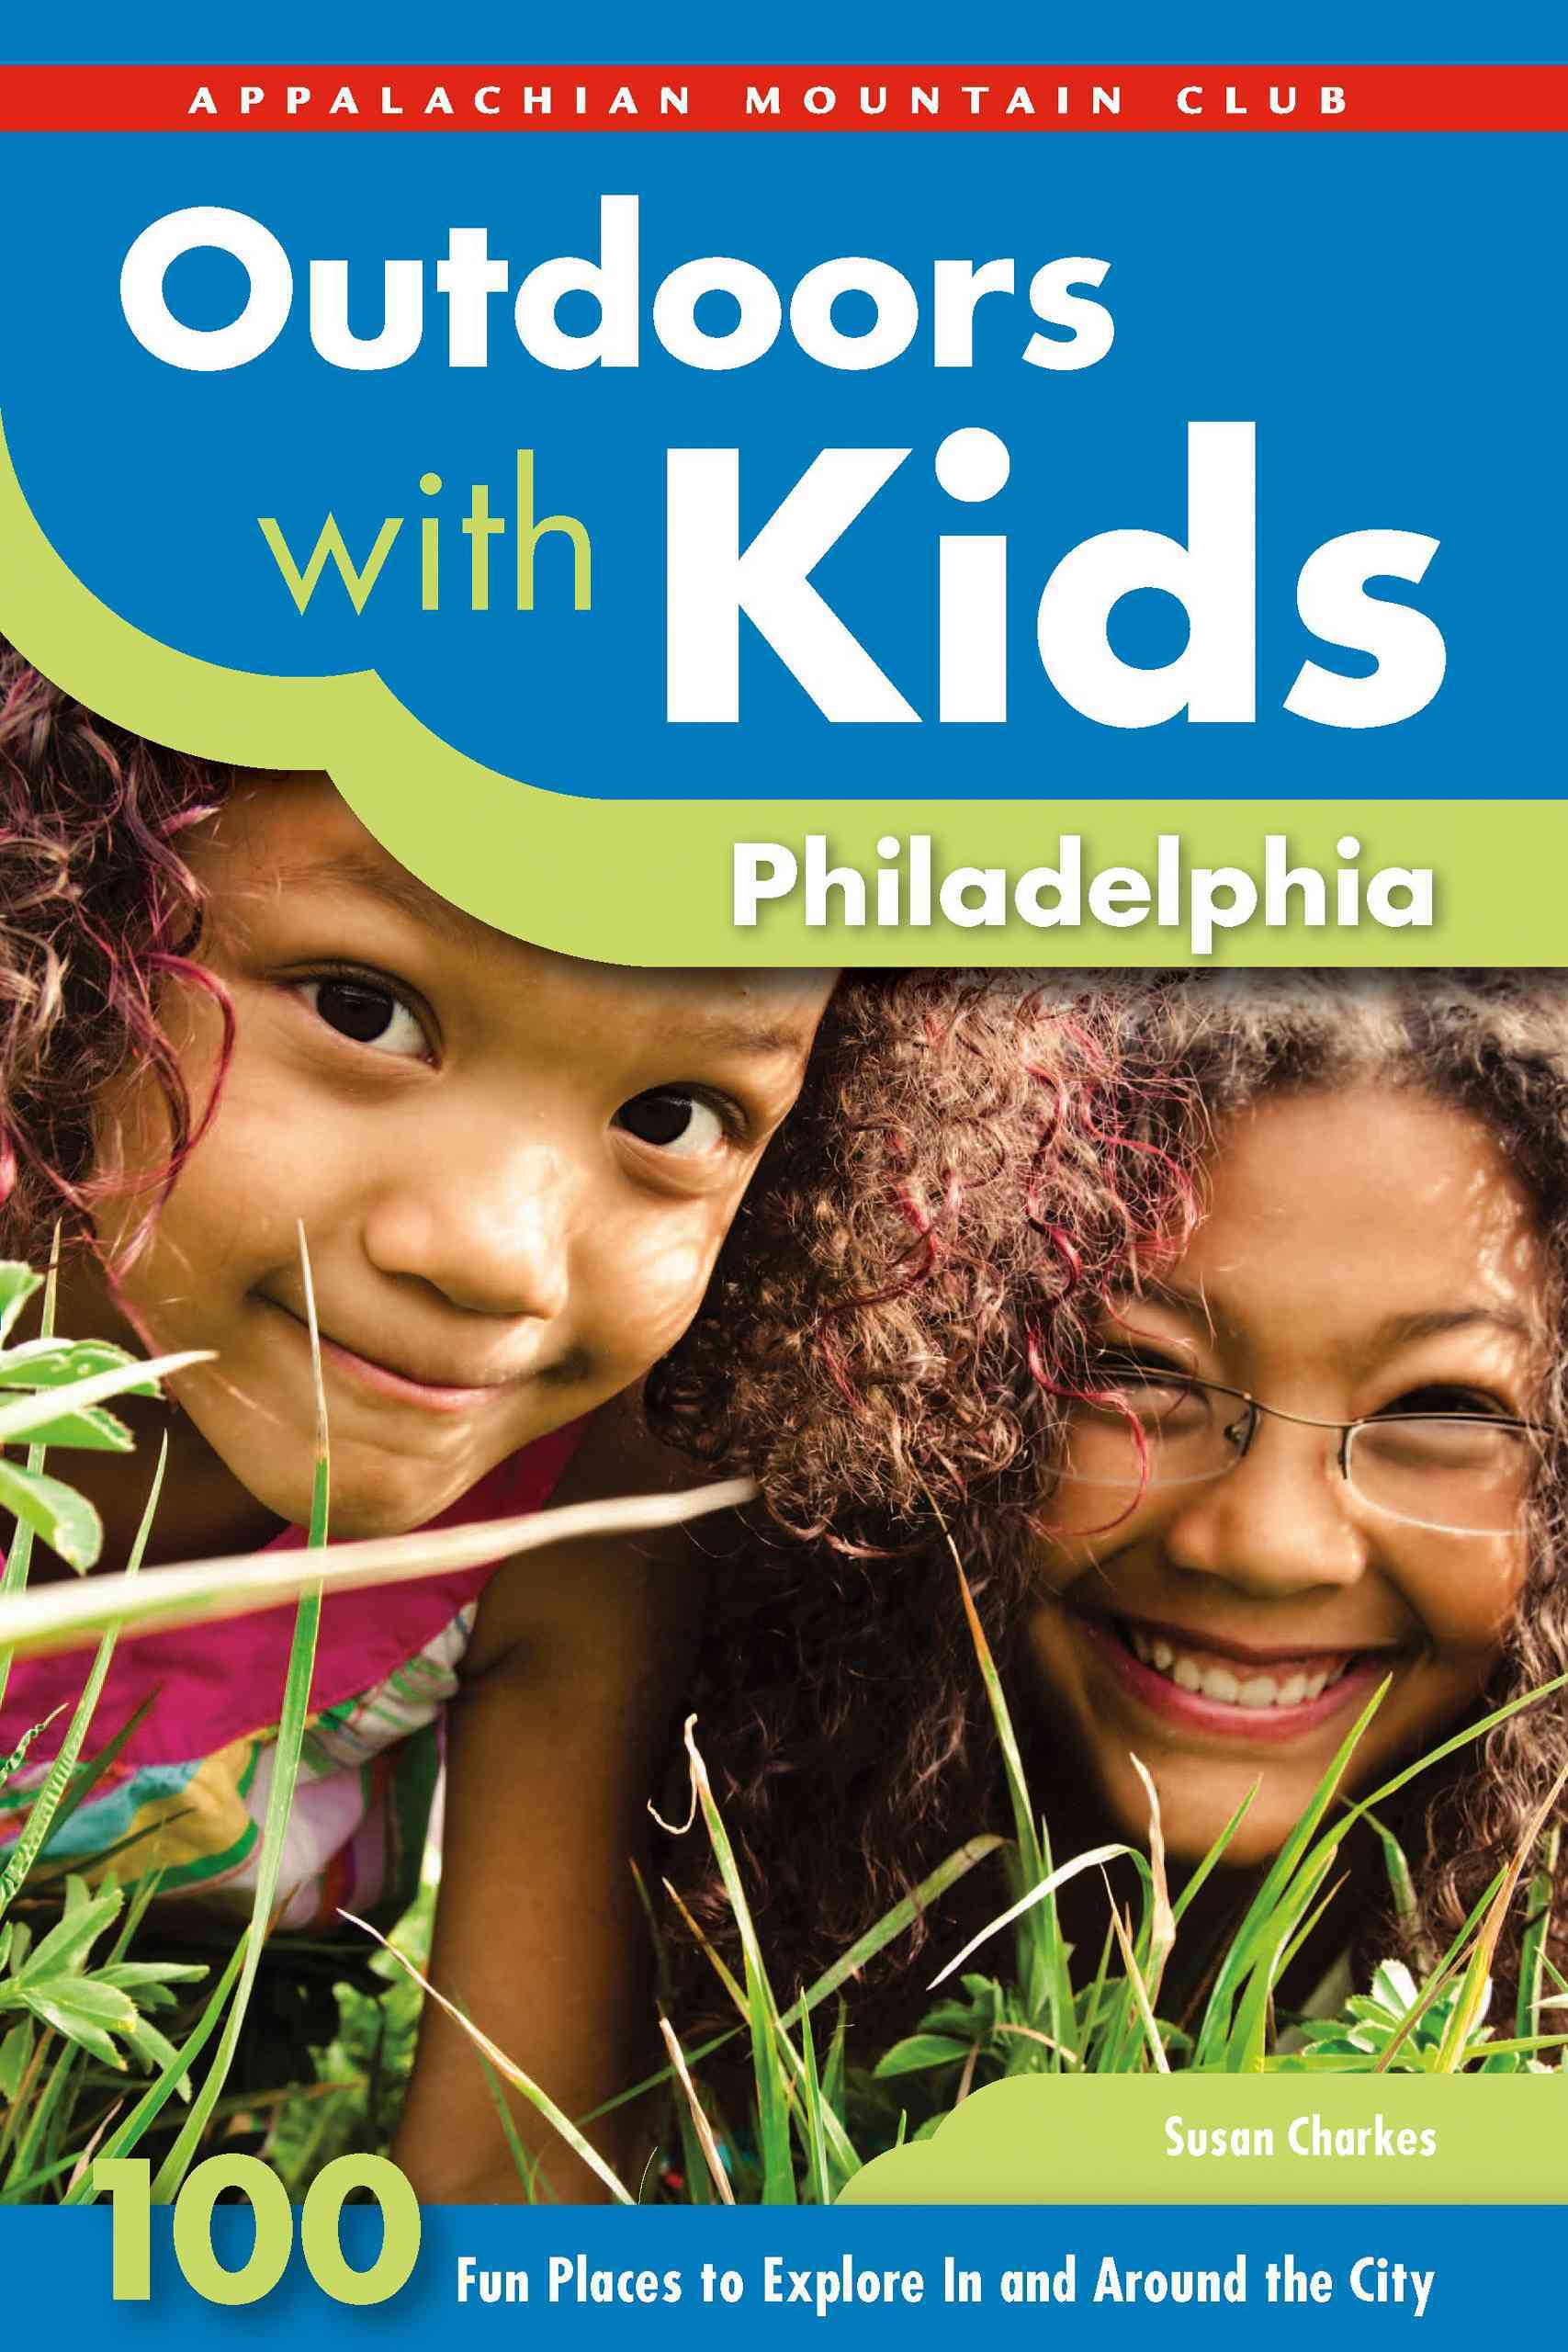 Outdoors with Kids Philadelphia: 100 Fun Places to Explore in and Around the City (Paperback)